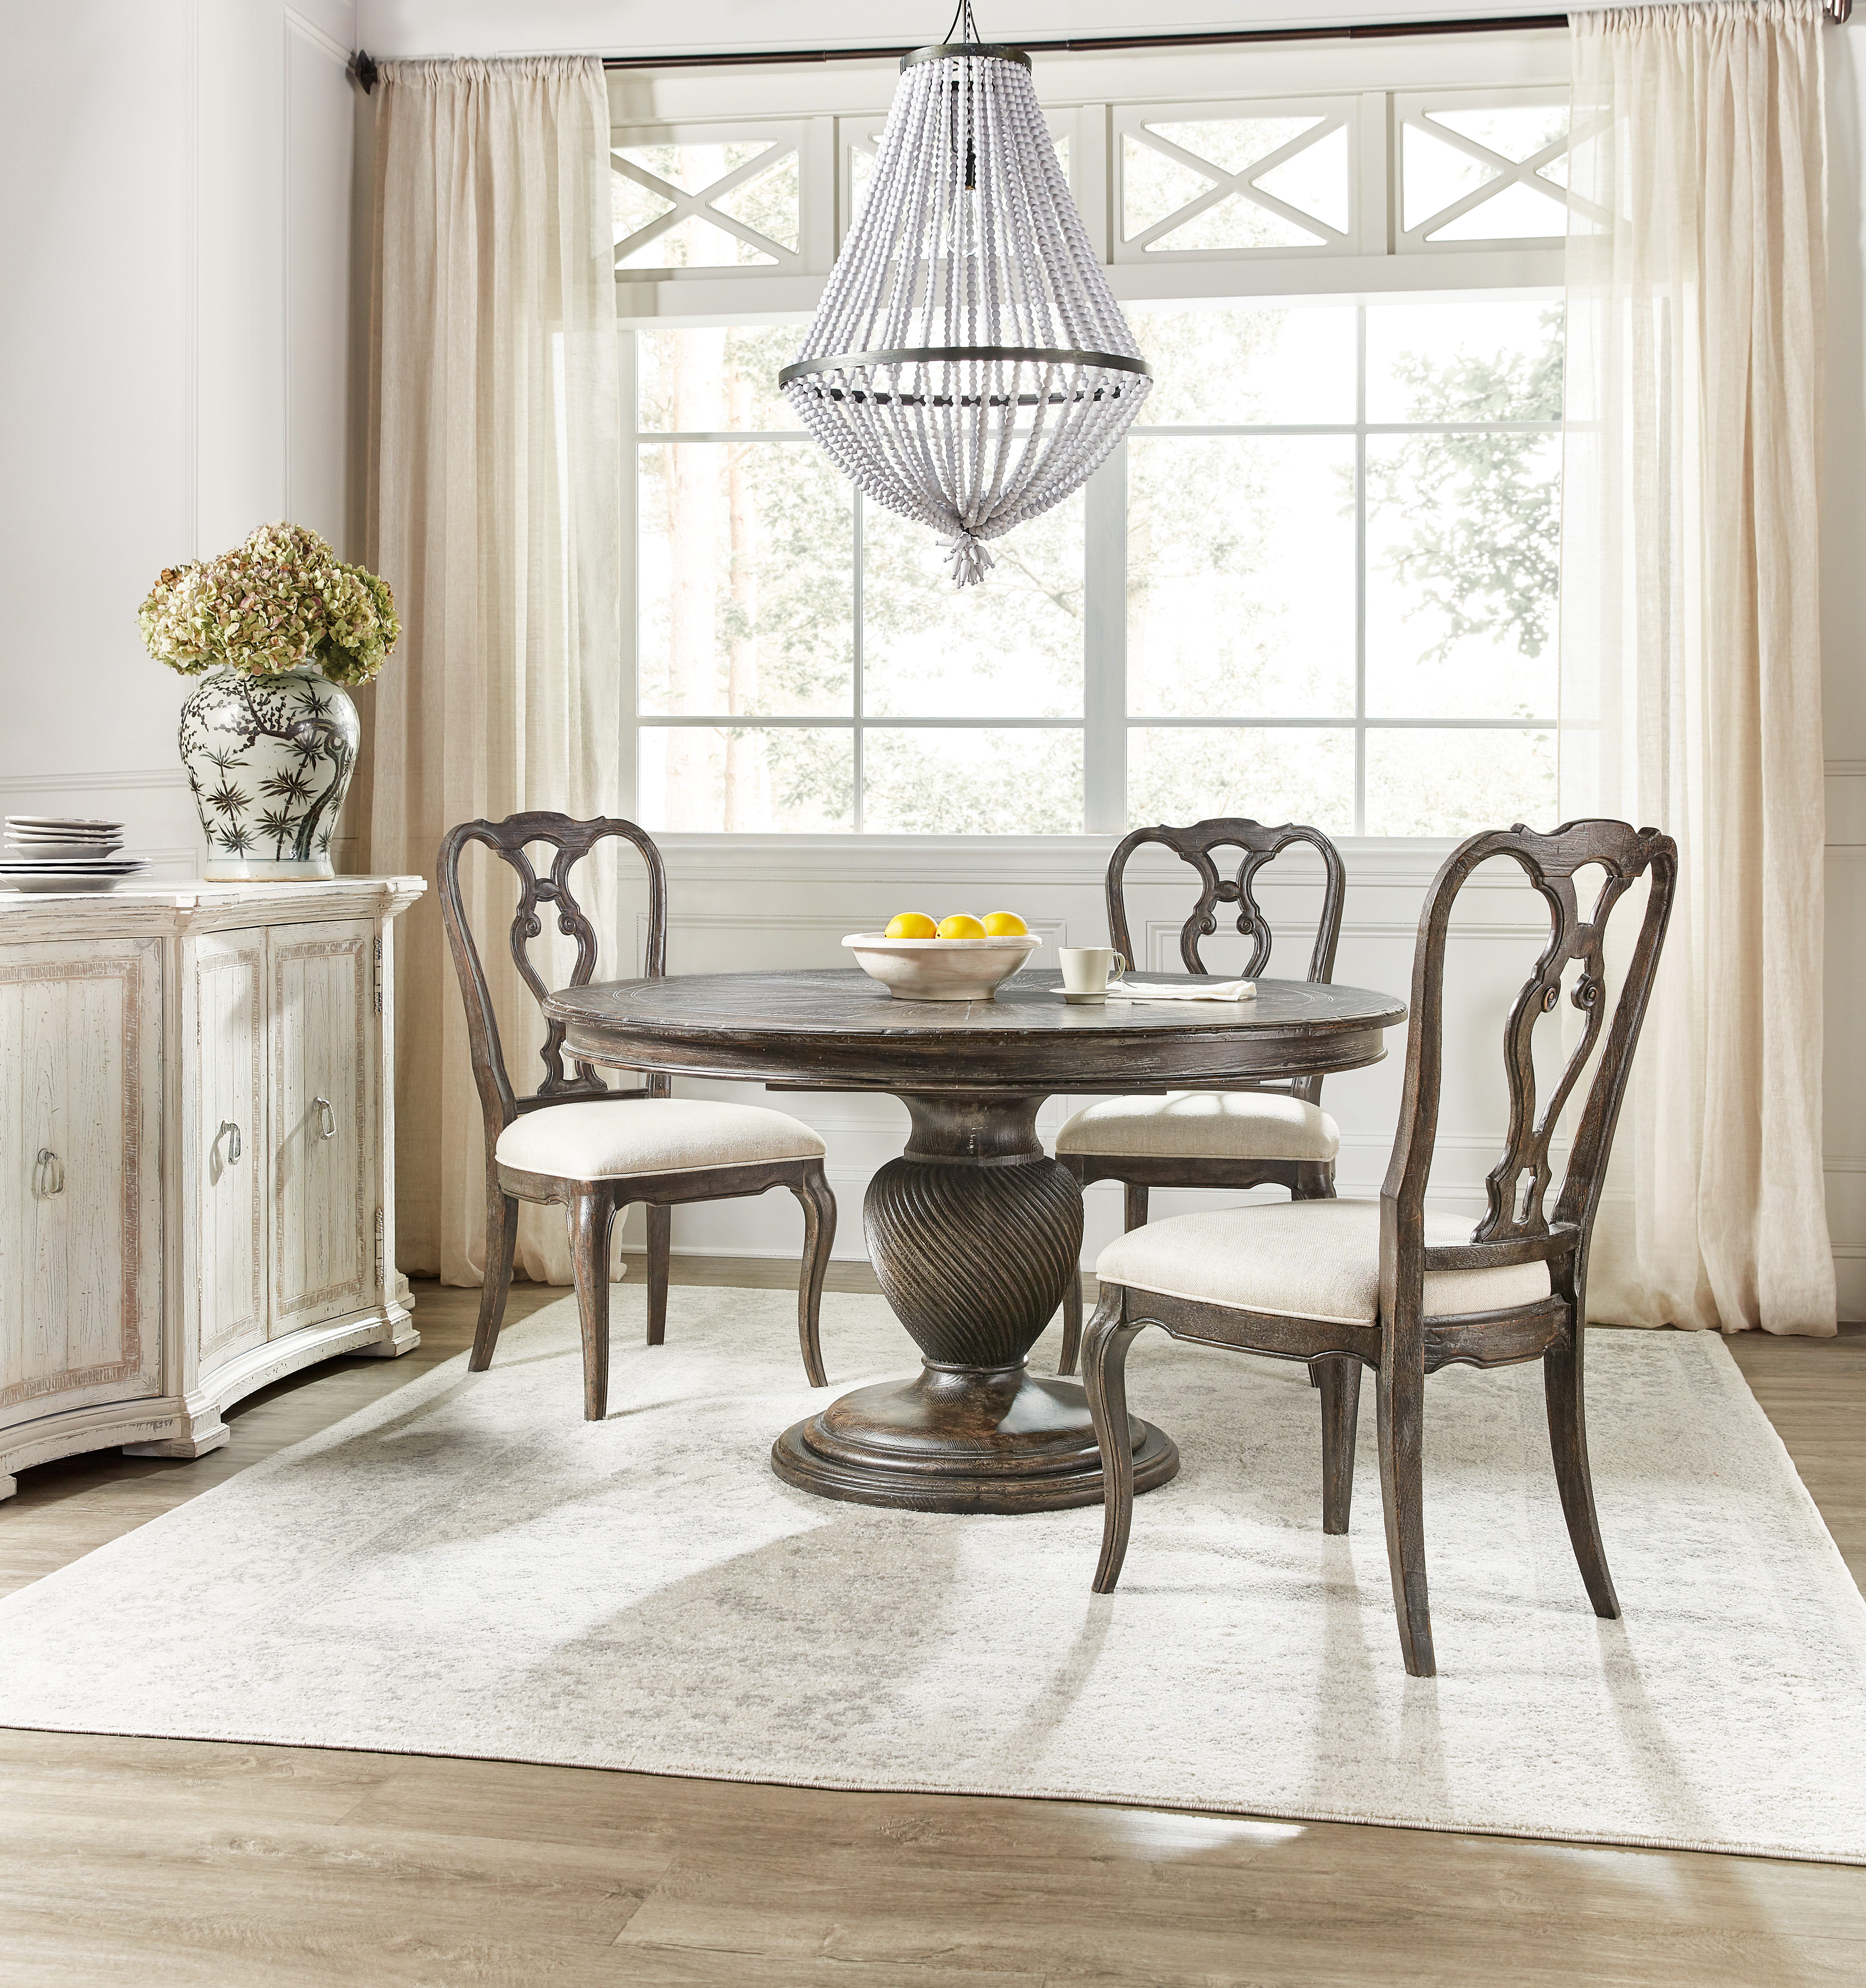 4-Piece Dining Set with Round Table